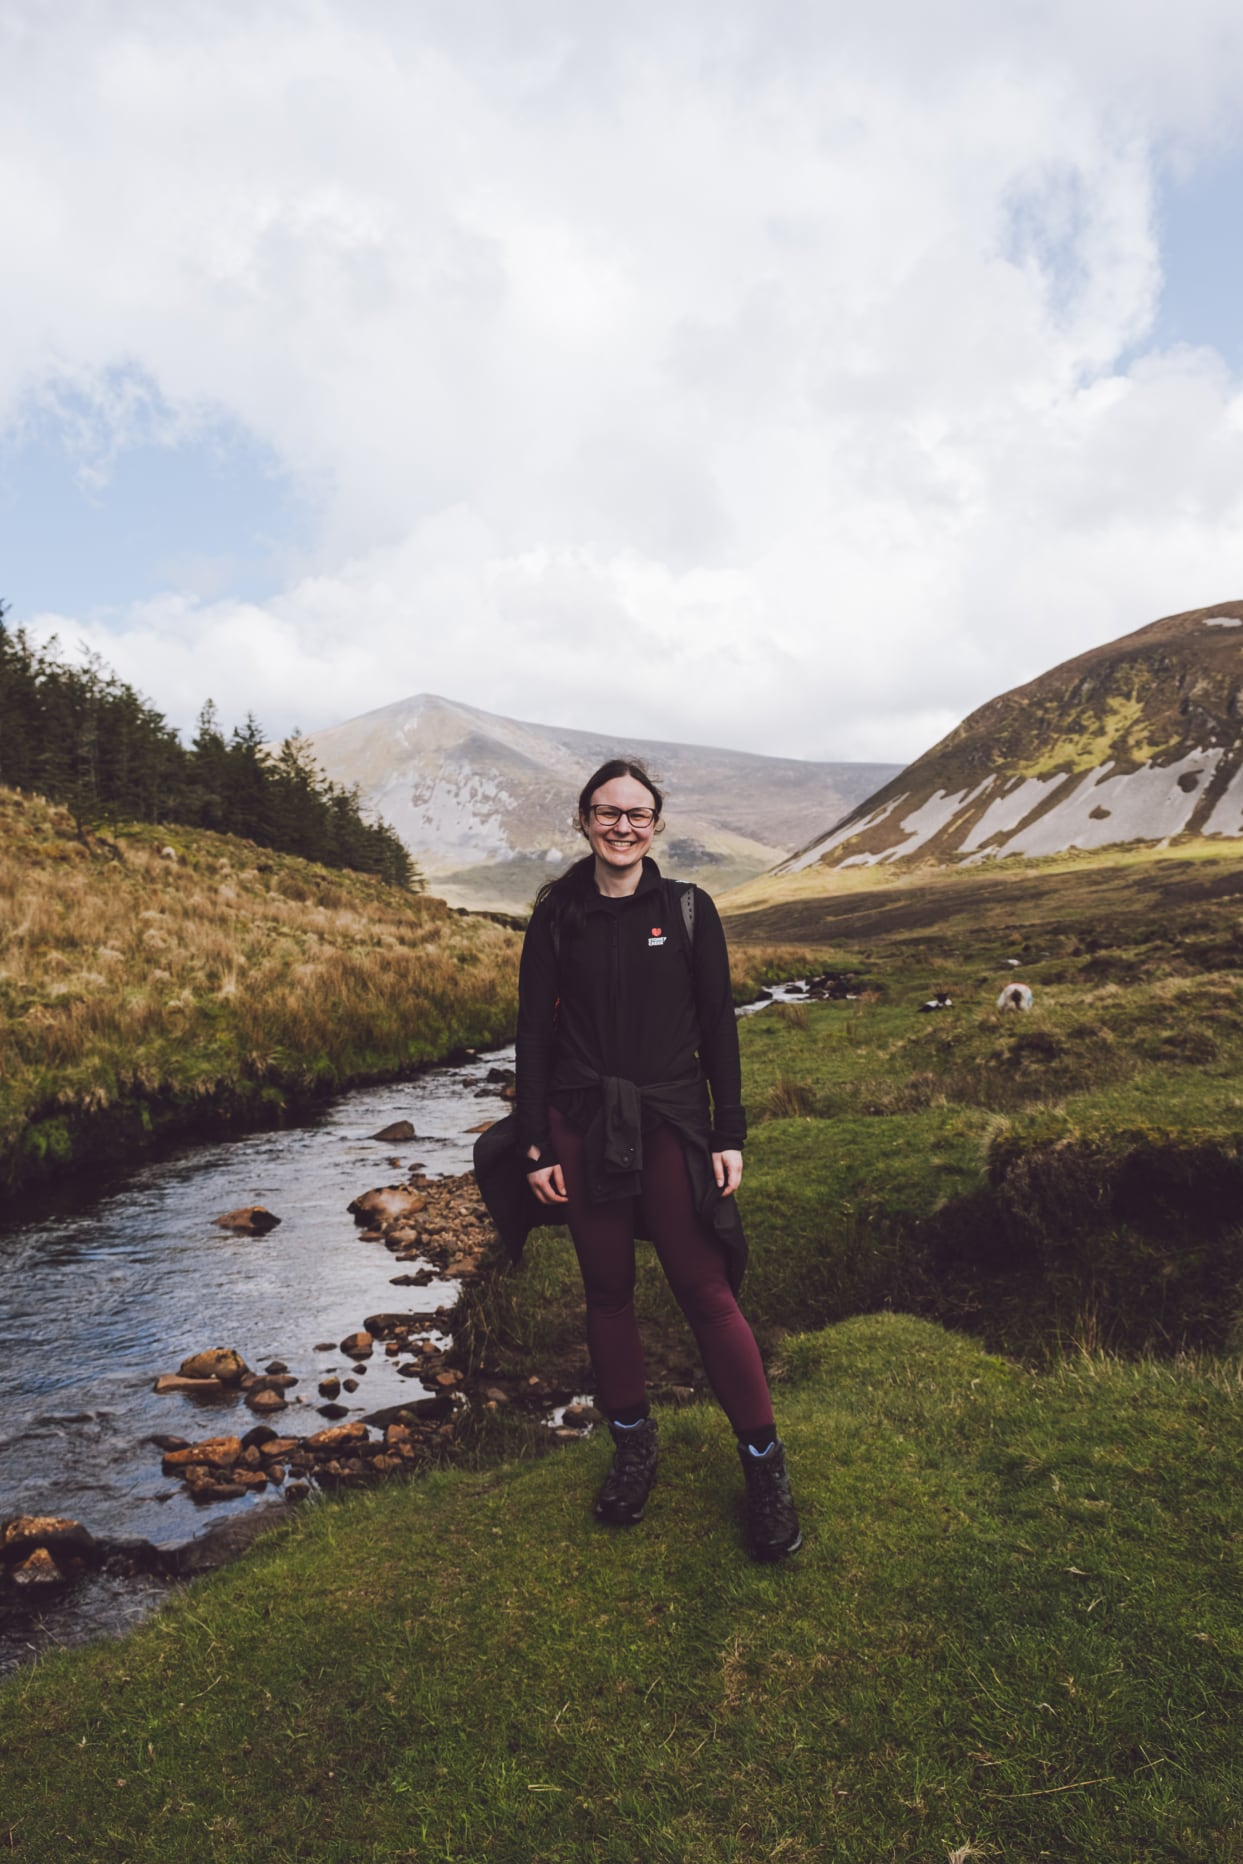 Profile photo of Emma in the mountains of Co Mayo, Ireland